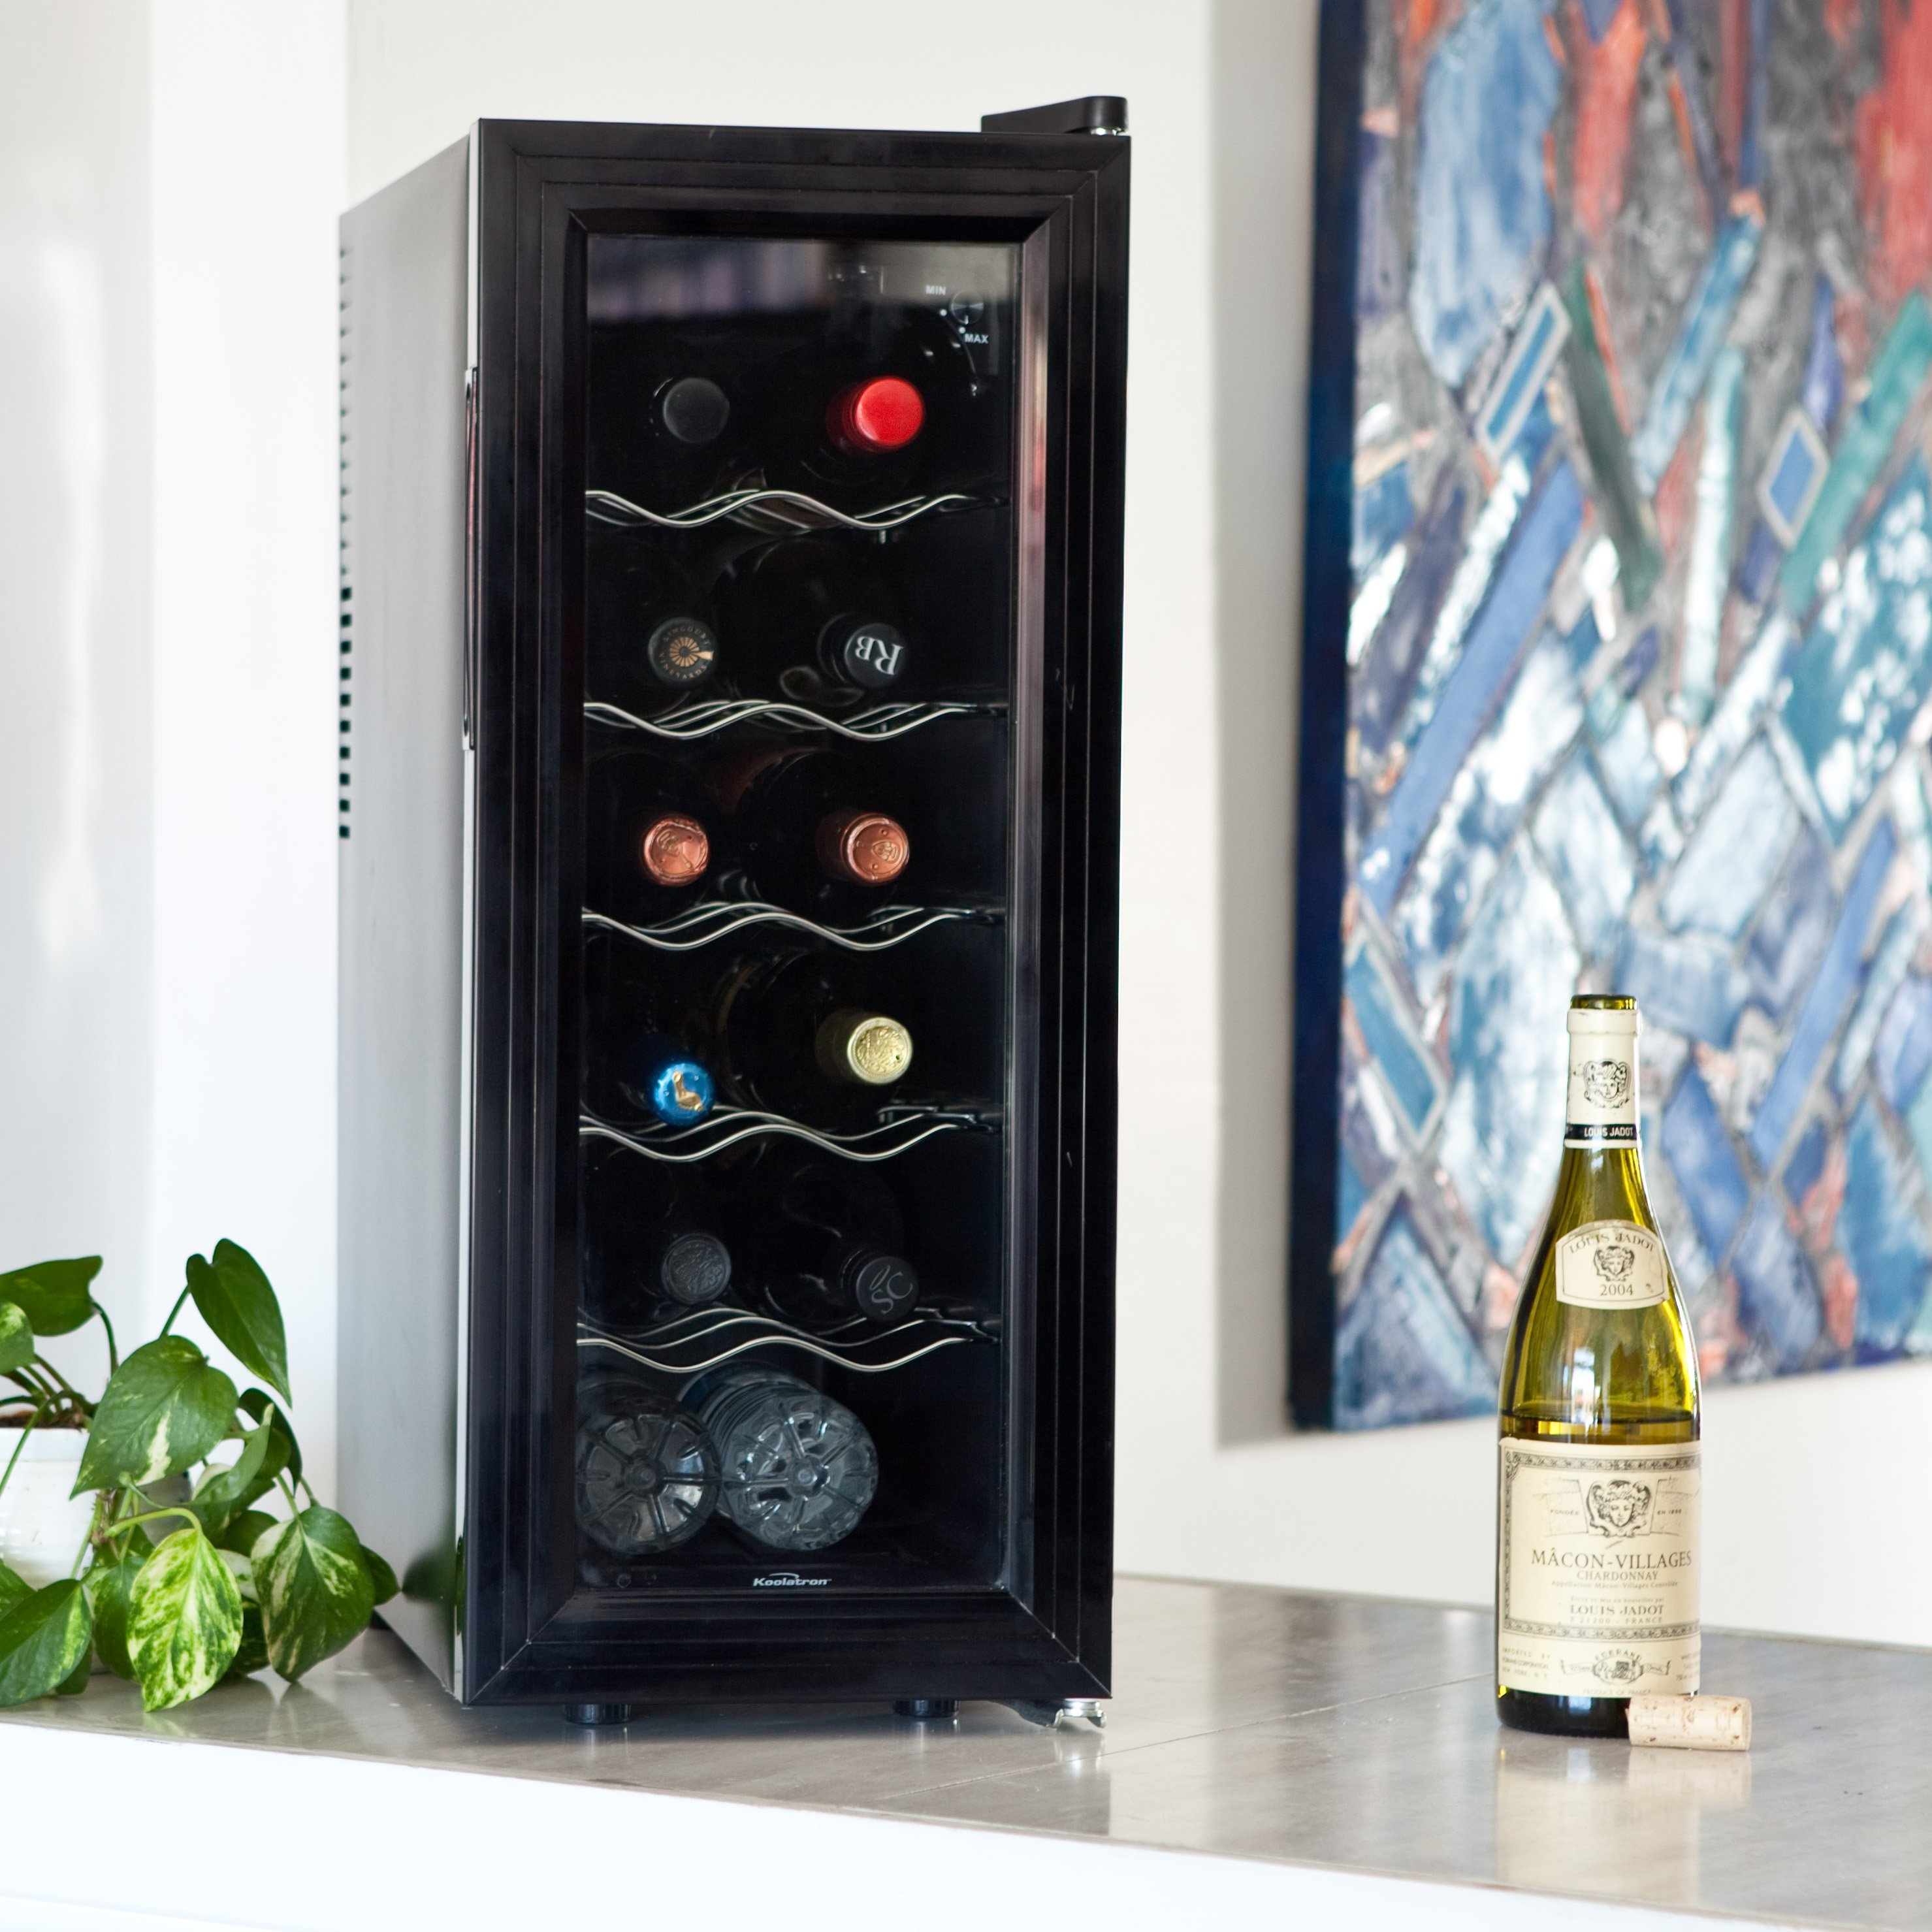 cooler dp newair black countertops countertop com bottle aw thermoelectric appliances refrigerator amazon wine